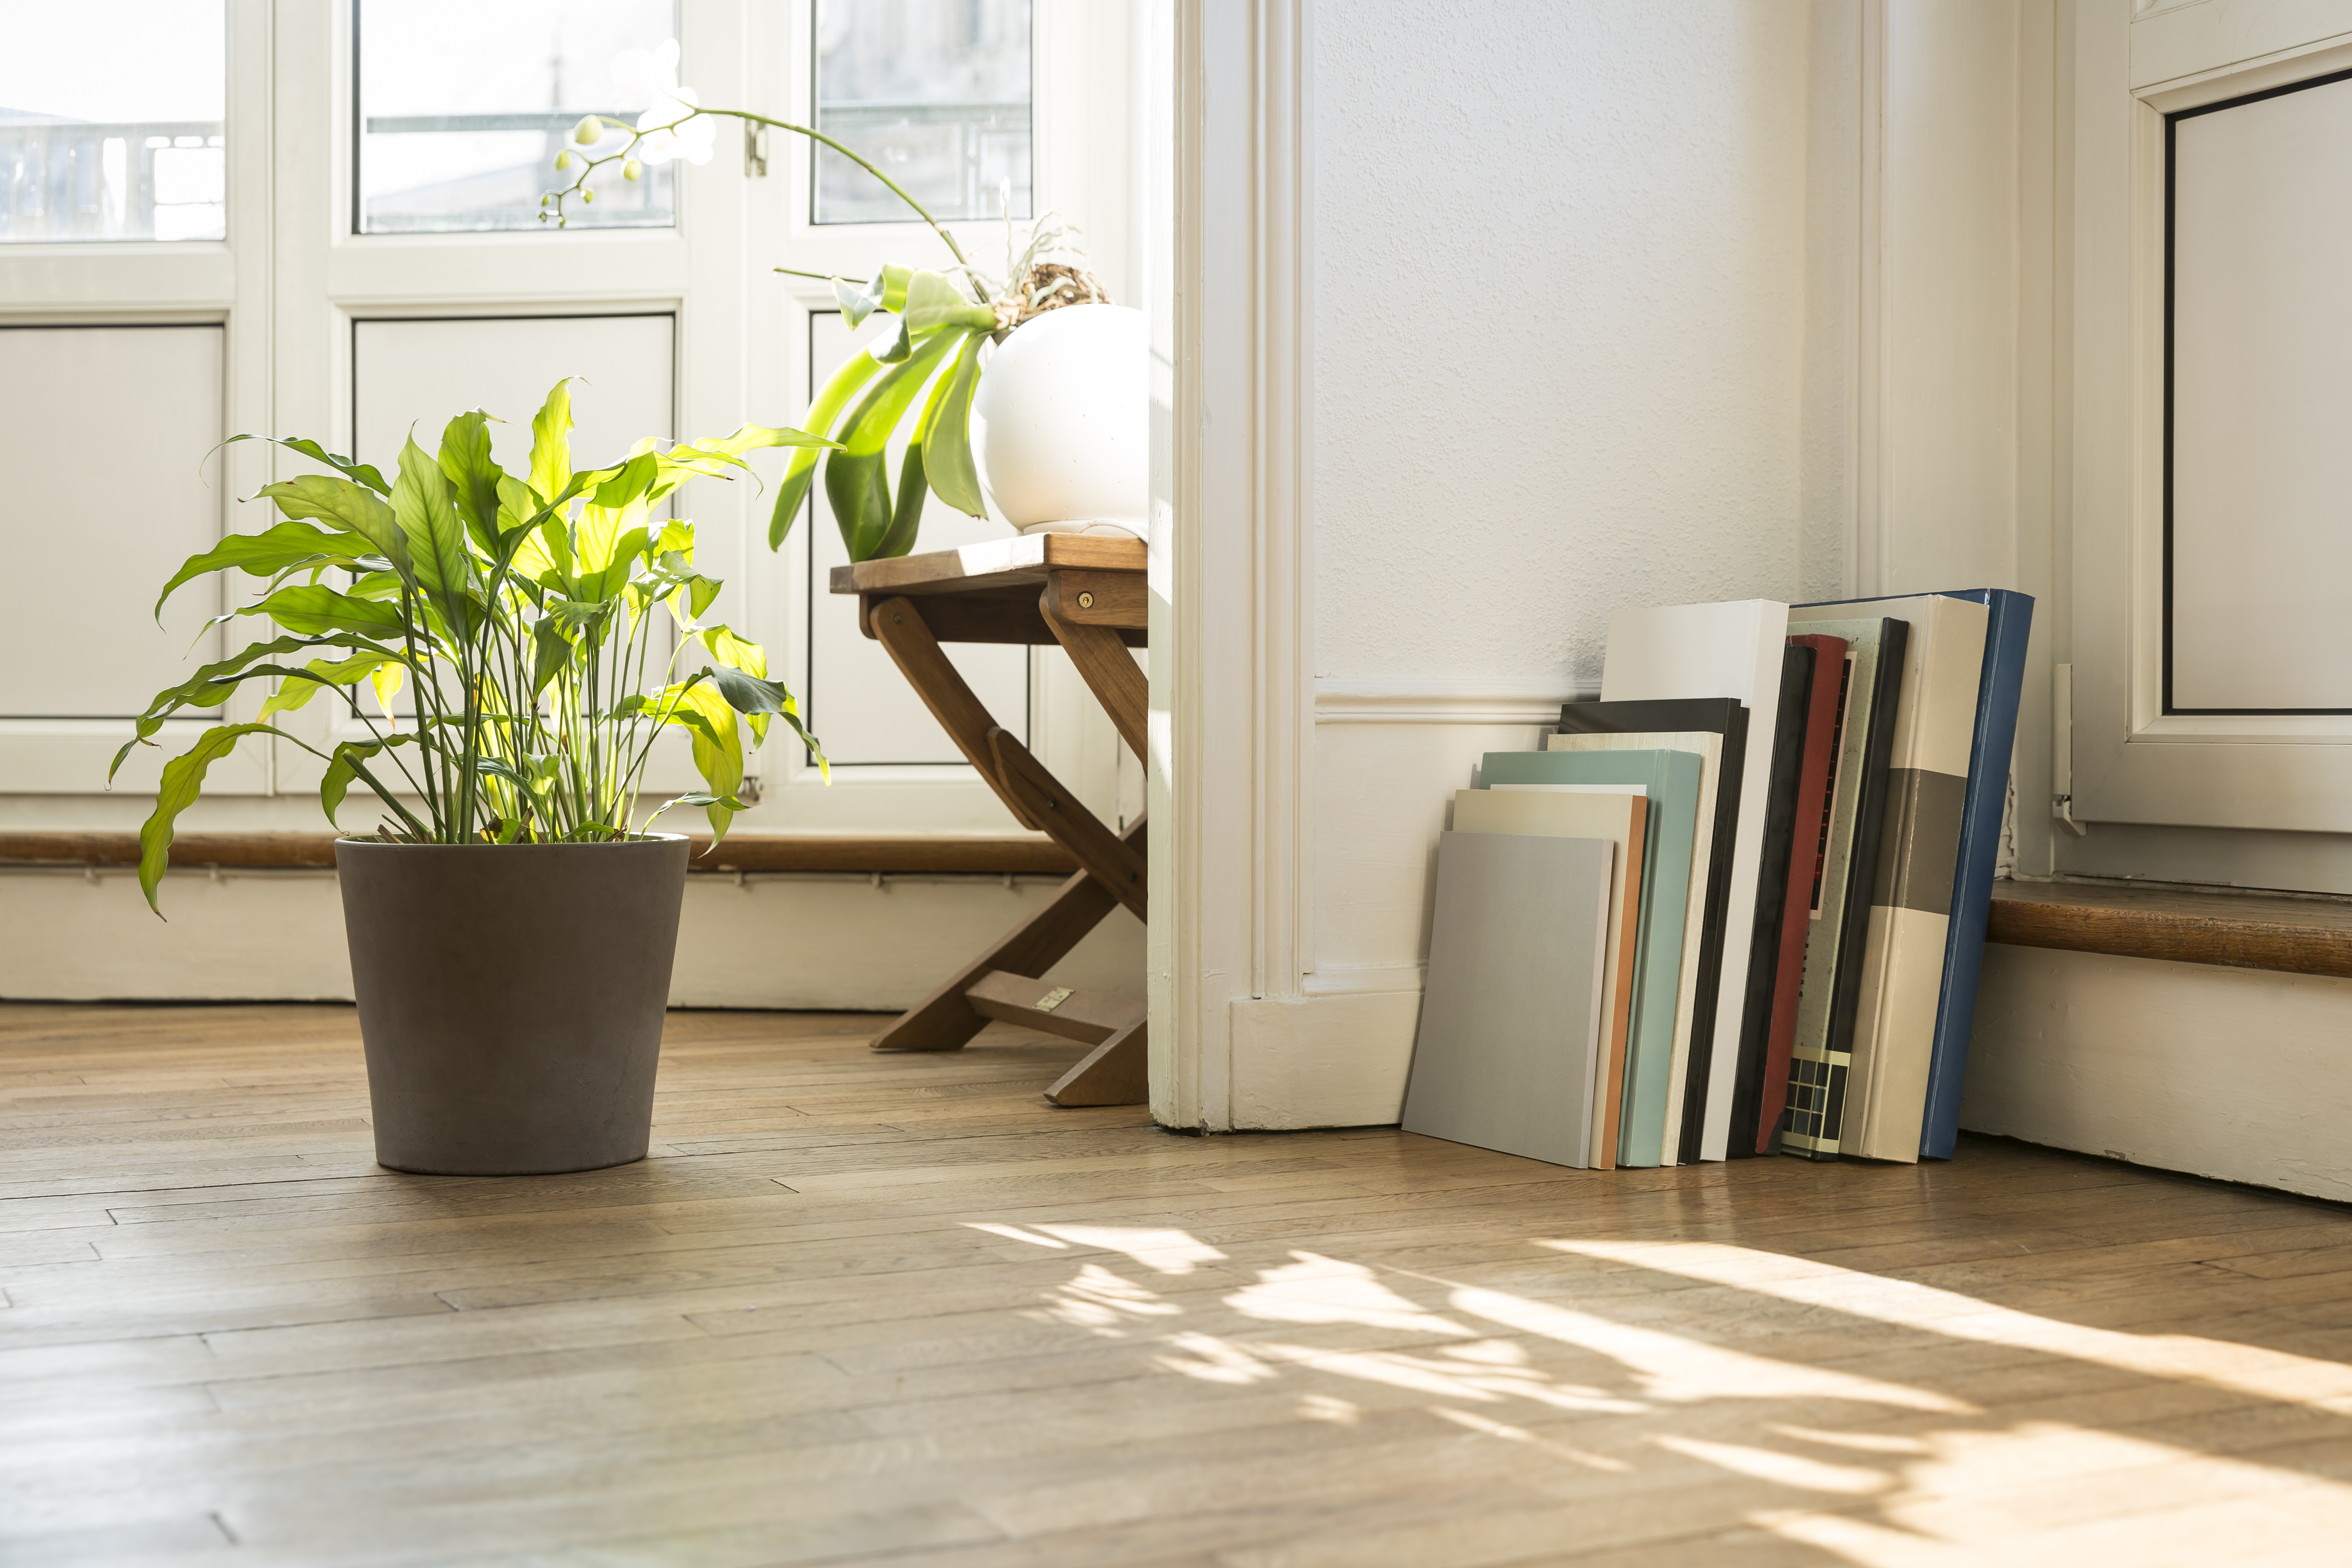 Home Styling Plants Getty Images